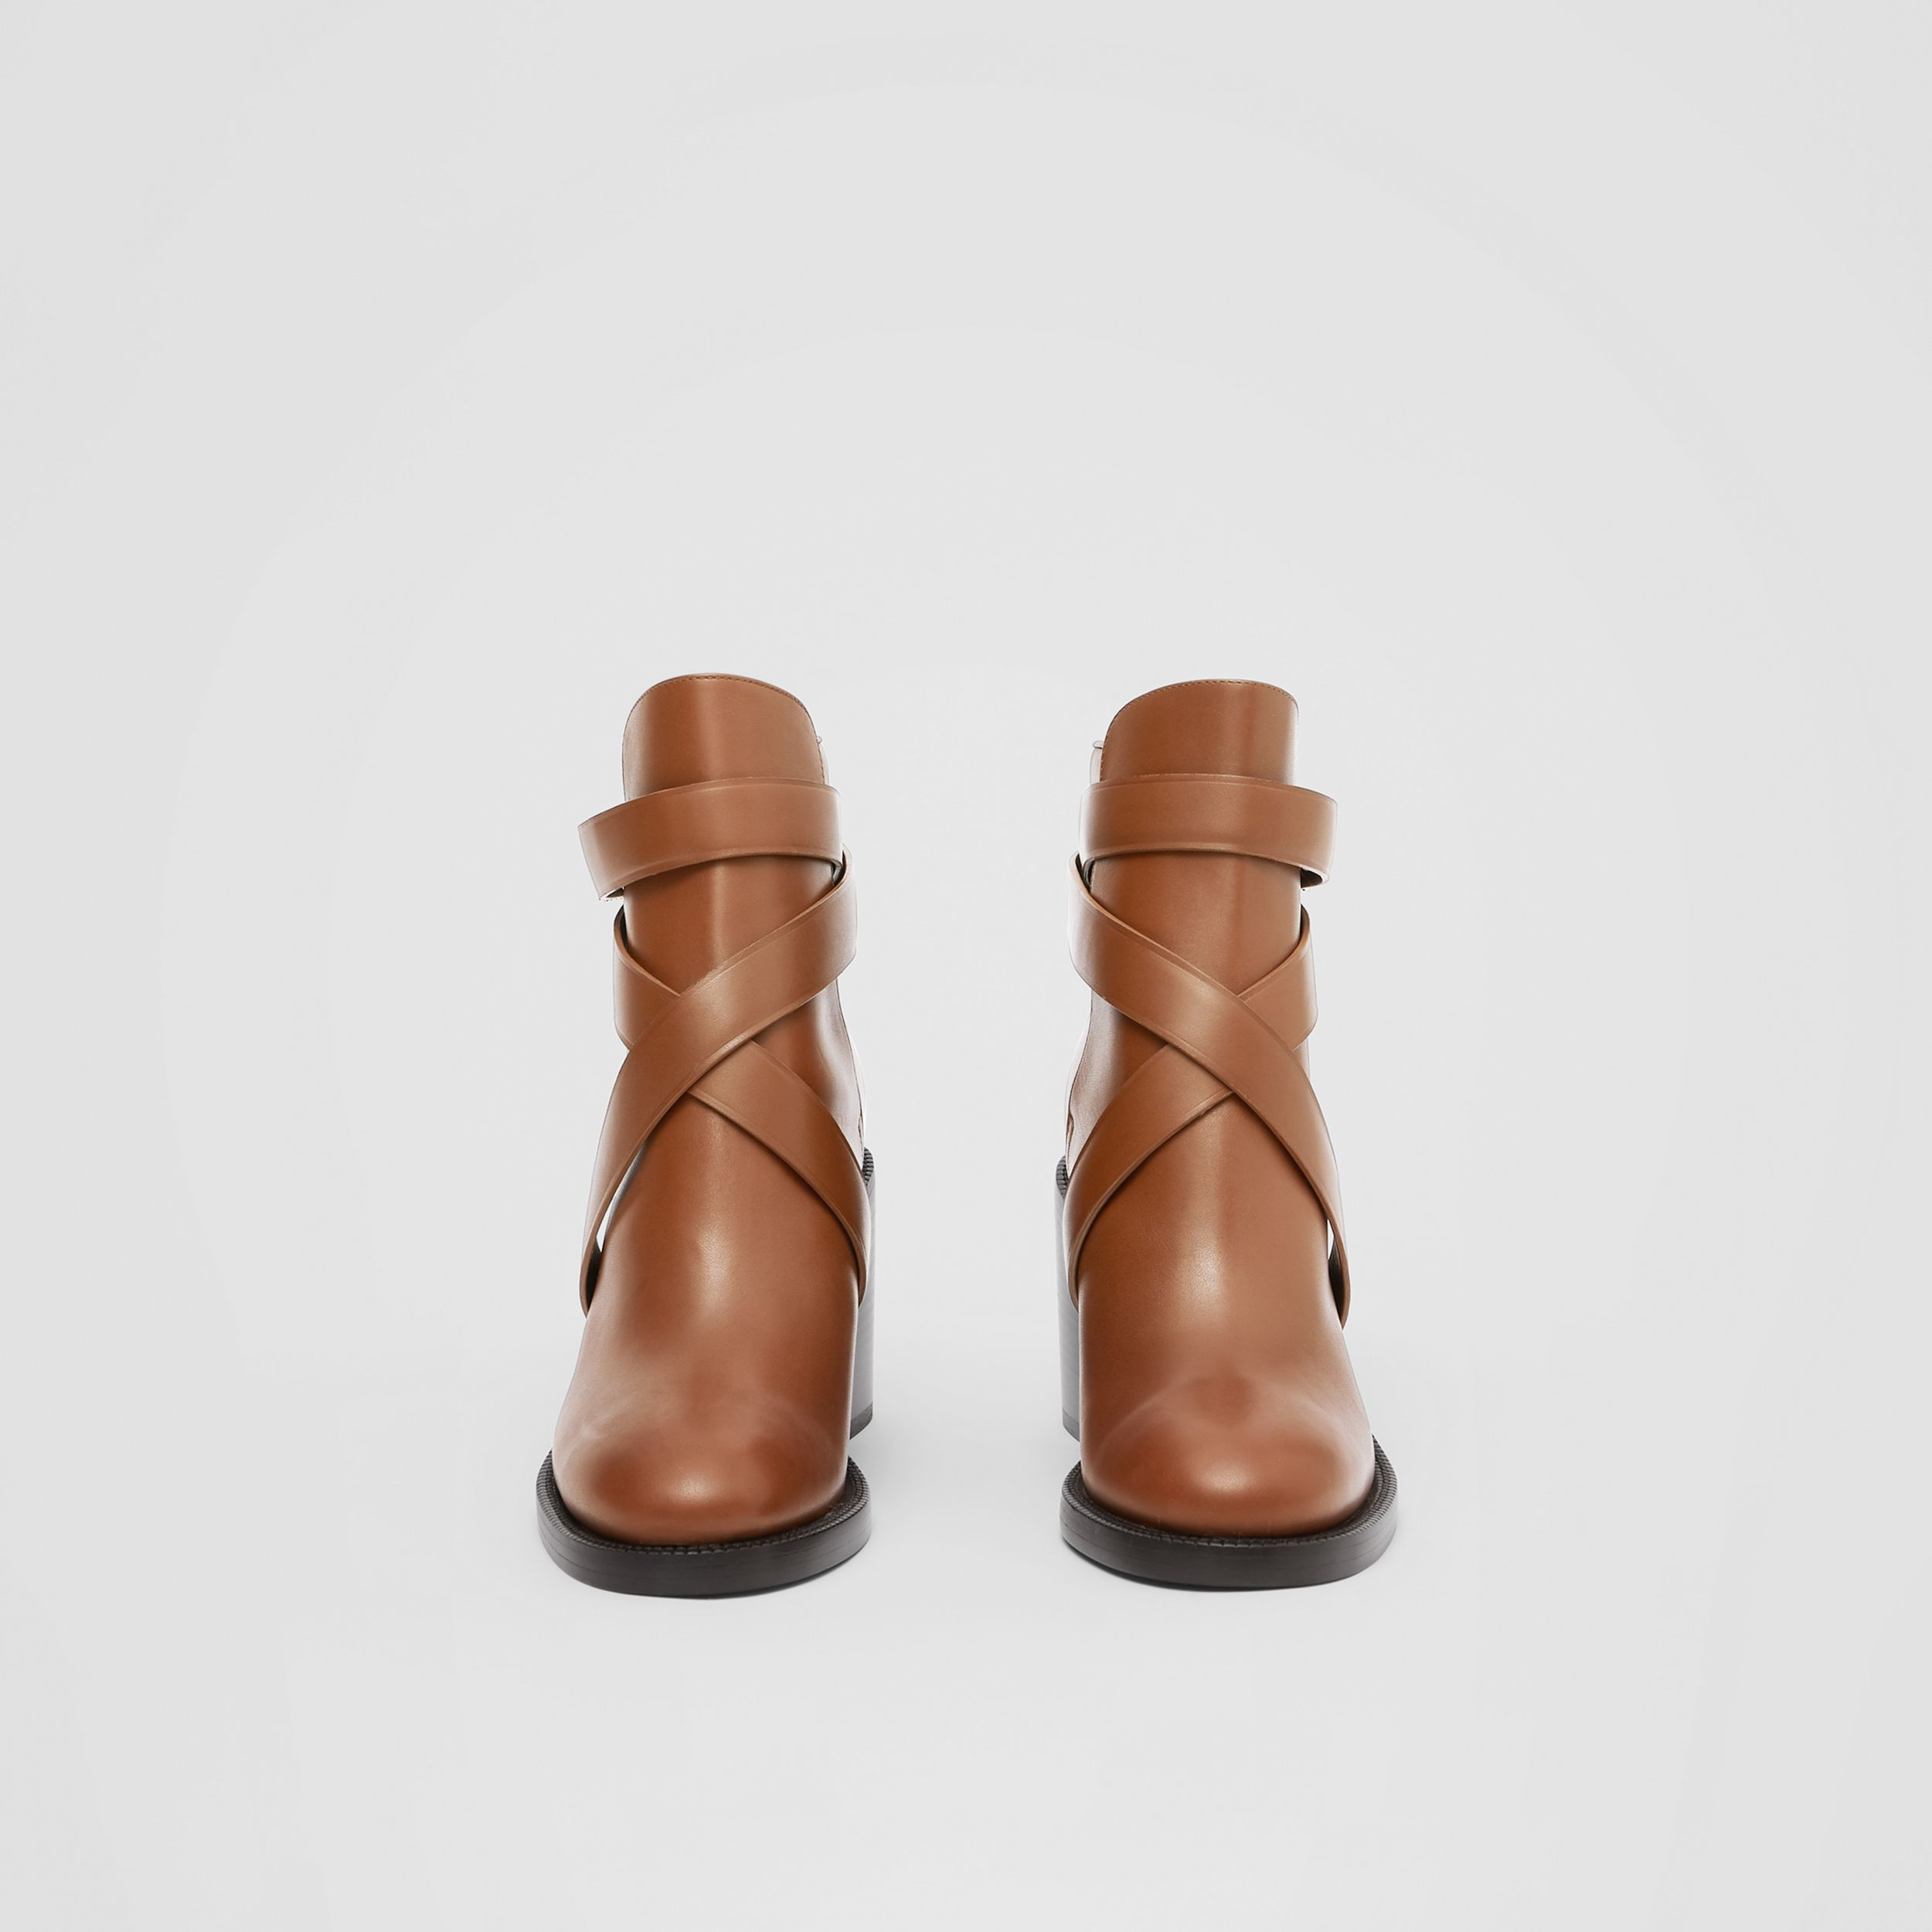 Monogram Motif Leather Ankle Boots in Tan - Women | Burberry - 4